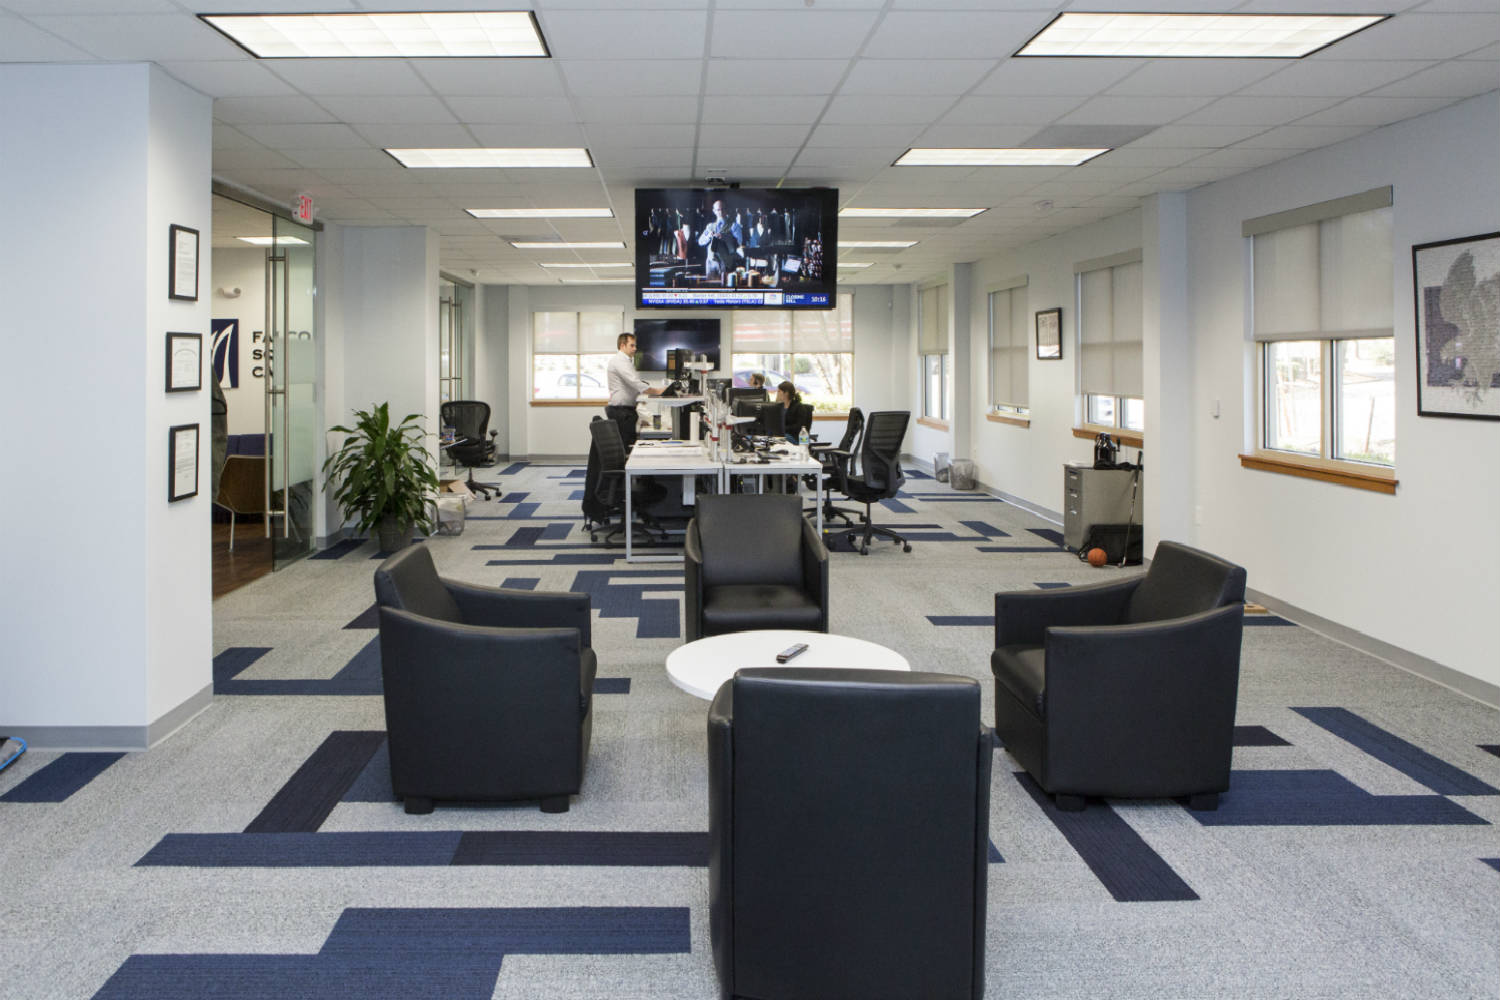 Falcon Square Capital in Raleigh, NC - Internal Room Acoustics and Isolation by WSDG - Main Common Space 3